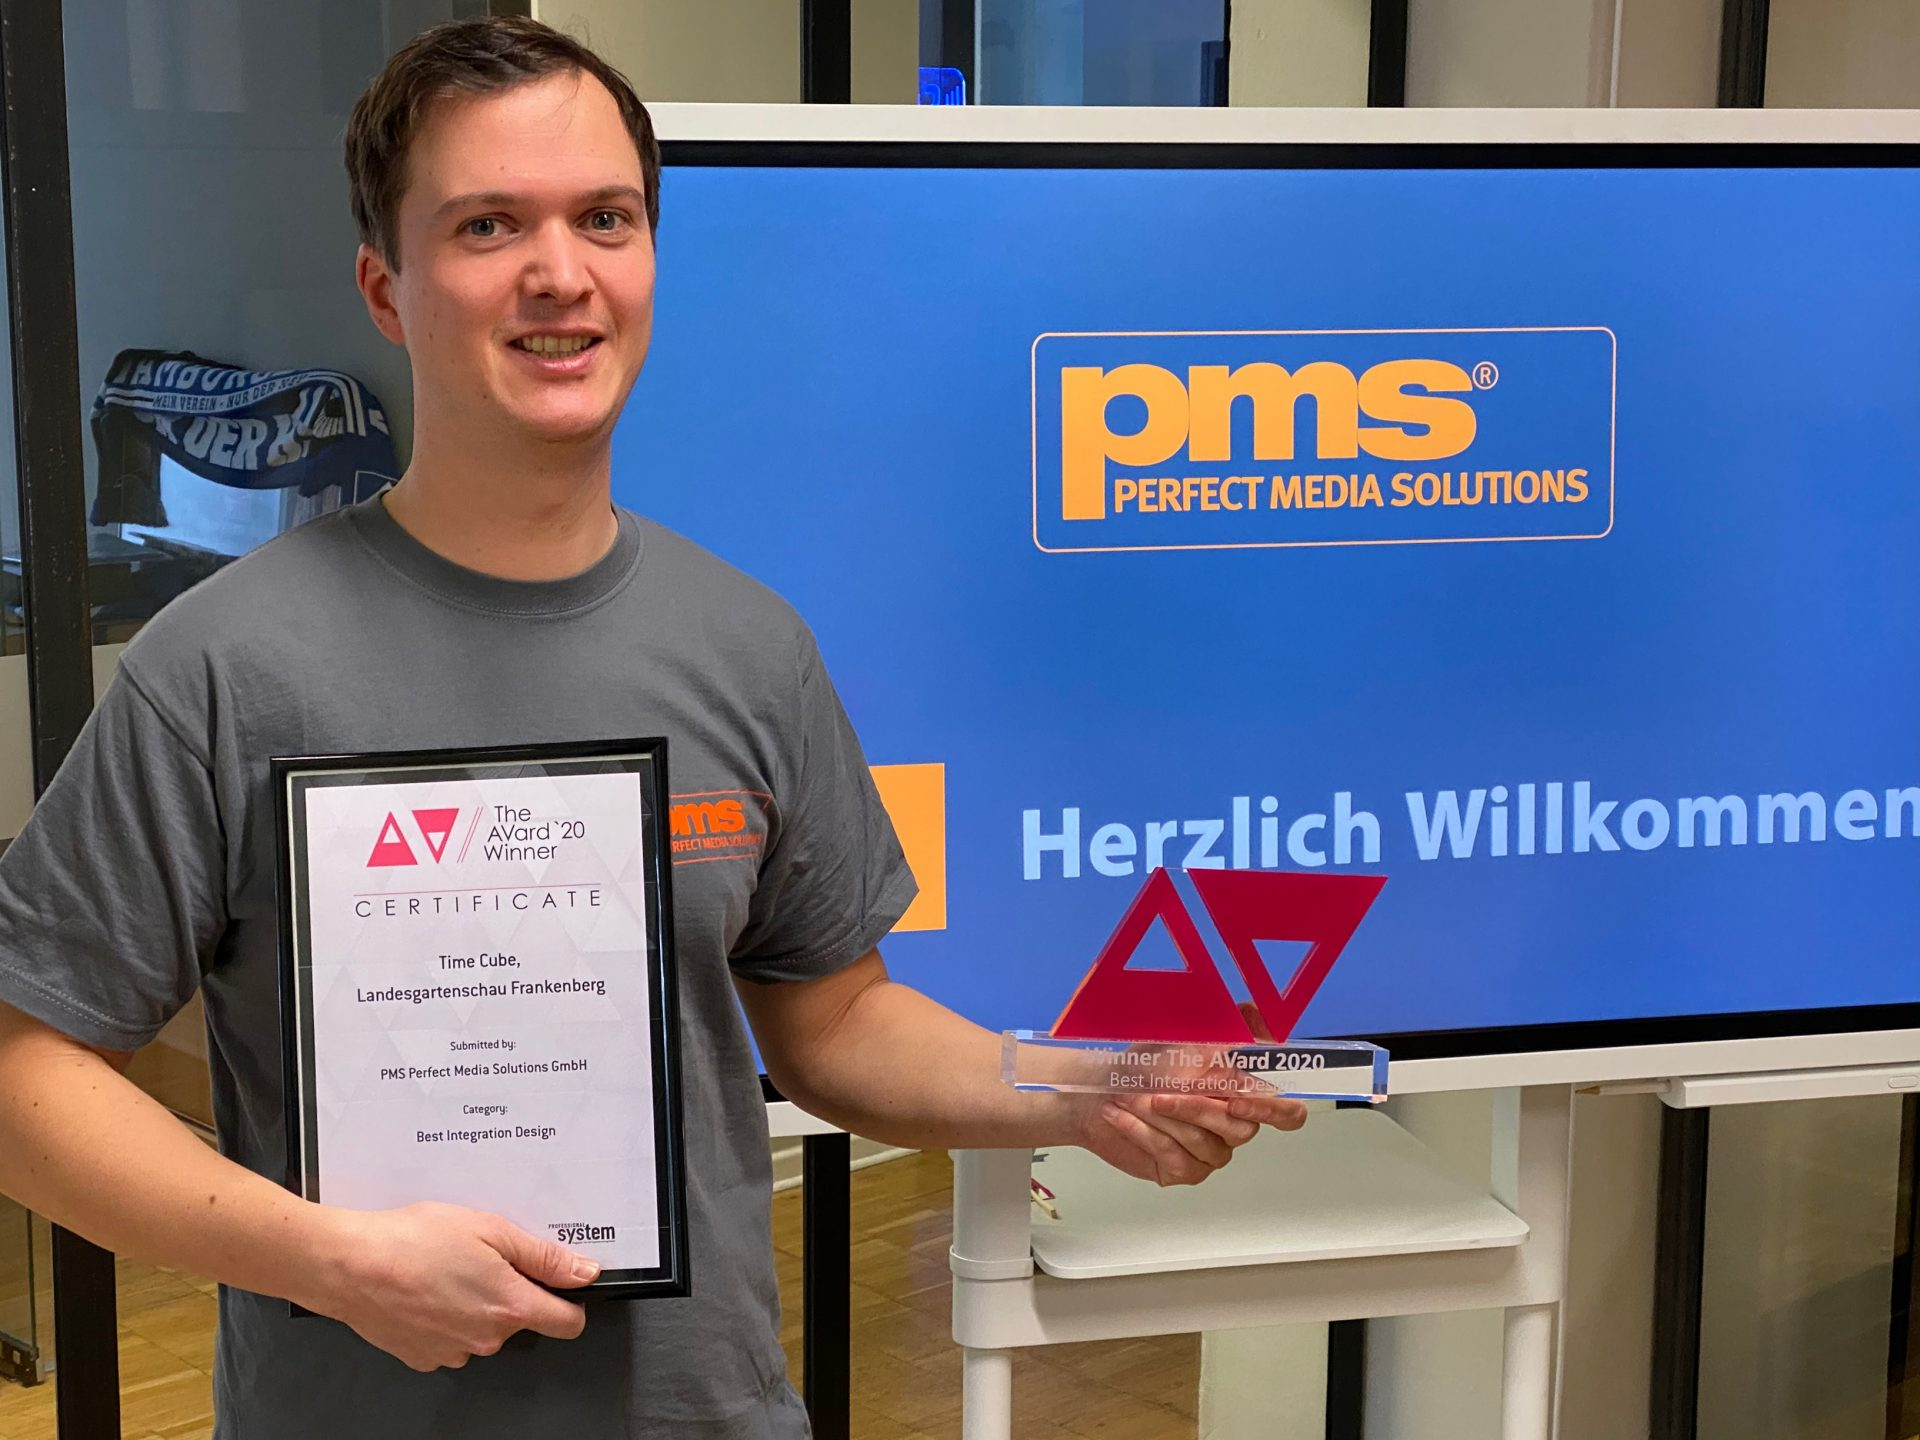 """Best Integration Design"" – PMS gewinnt AVard 2020"